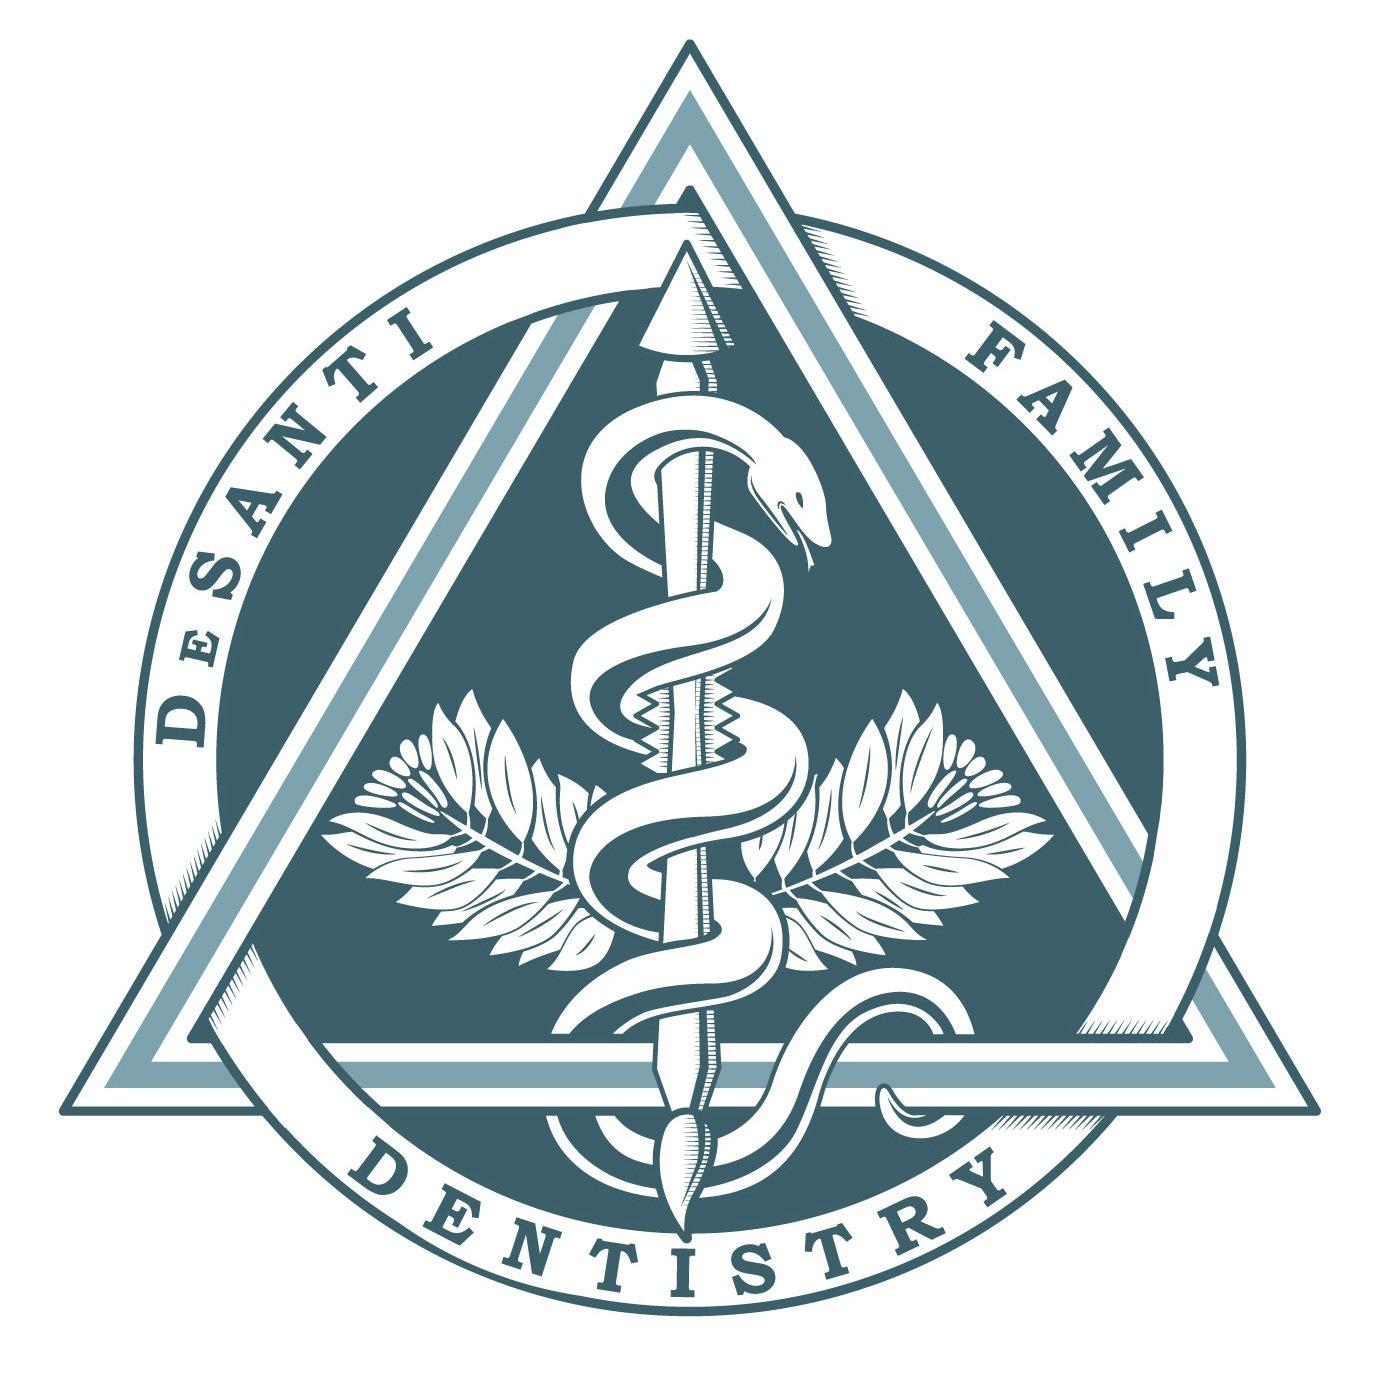 DeSanti Family Dentistry